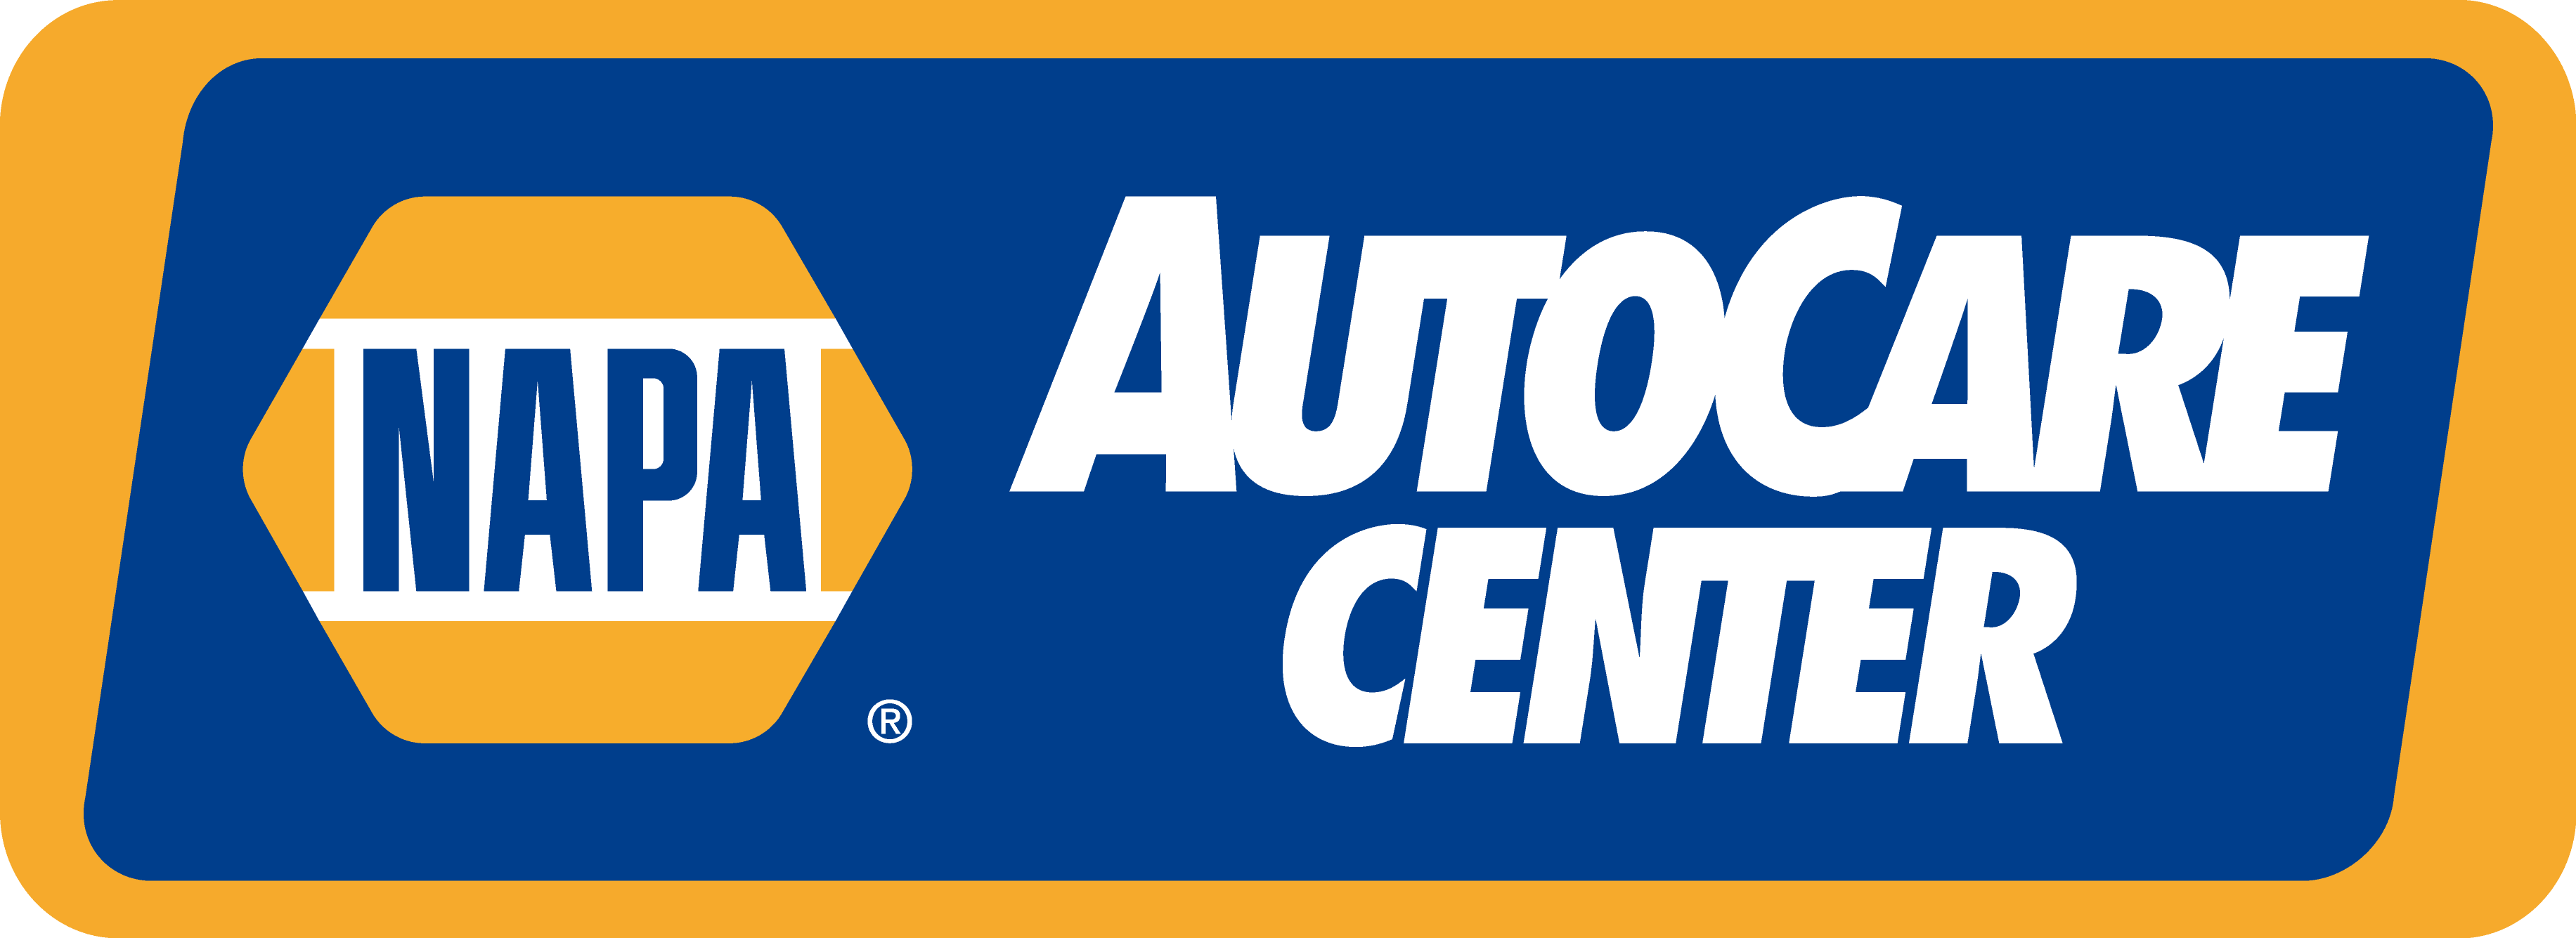 NAPA Auto Care Center, Nick & B's Auto Truck, Anderson, IN, 46012